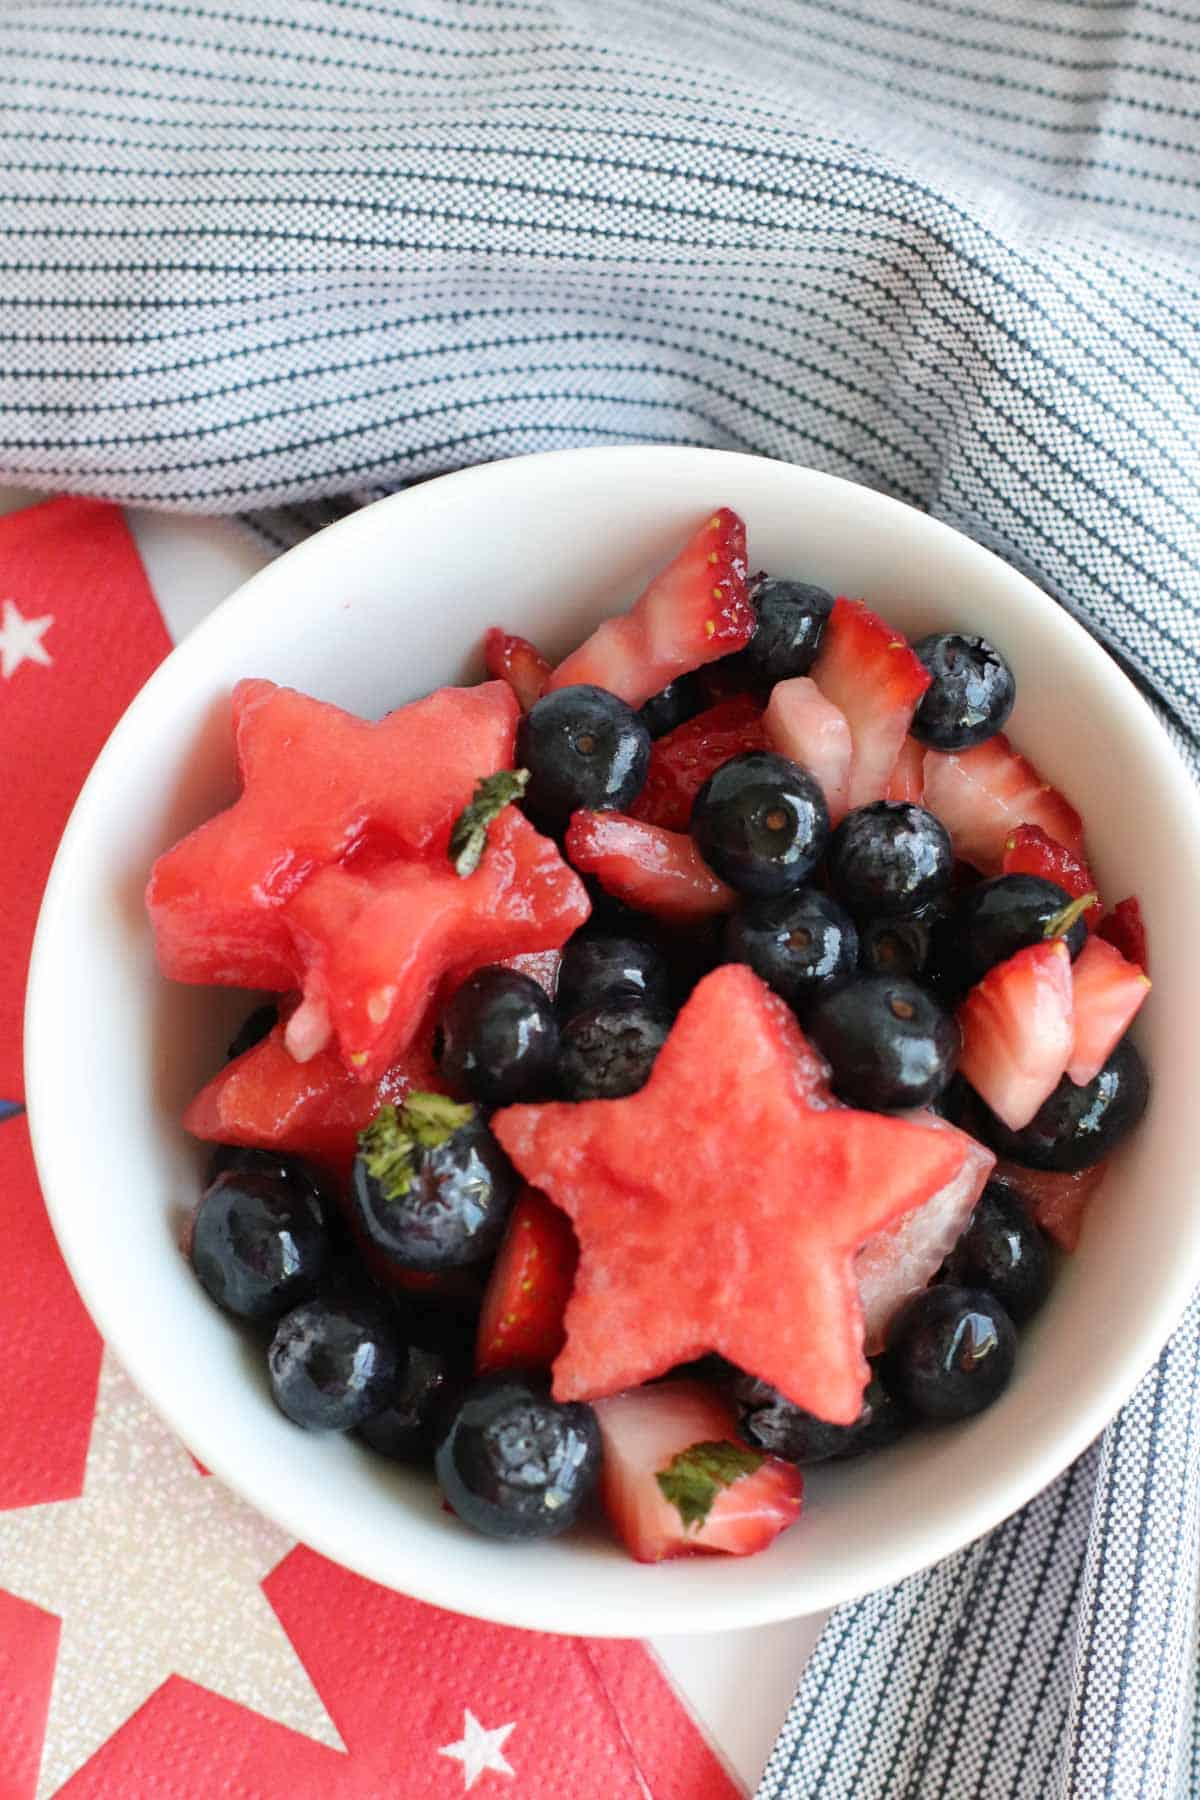 small bowl of fruit salad with chopped strawberries, blueberries, and watermelon stars surrounded by red ad white star napkins and a blue stripe cloth napkin